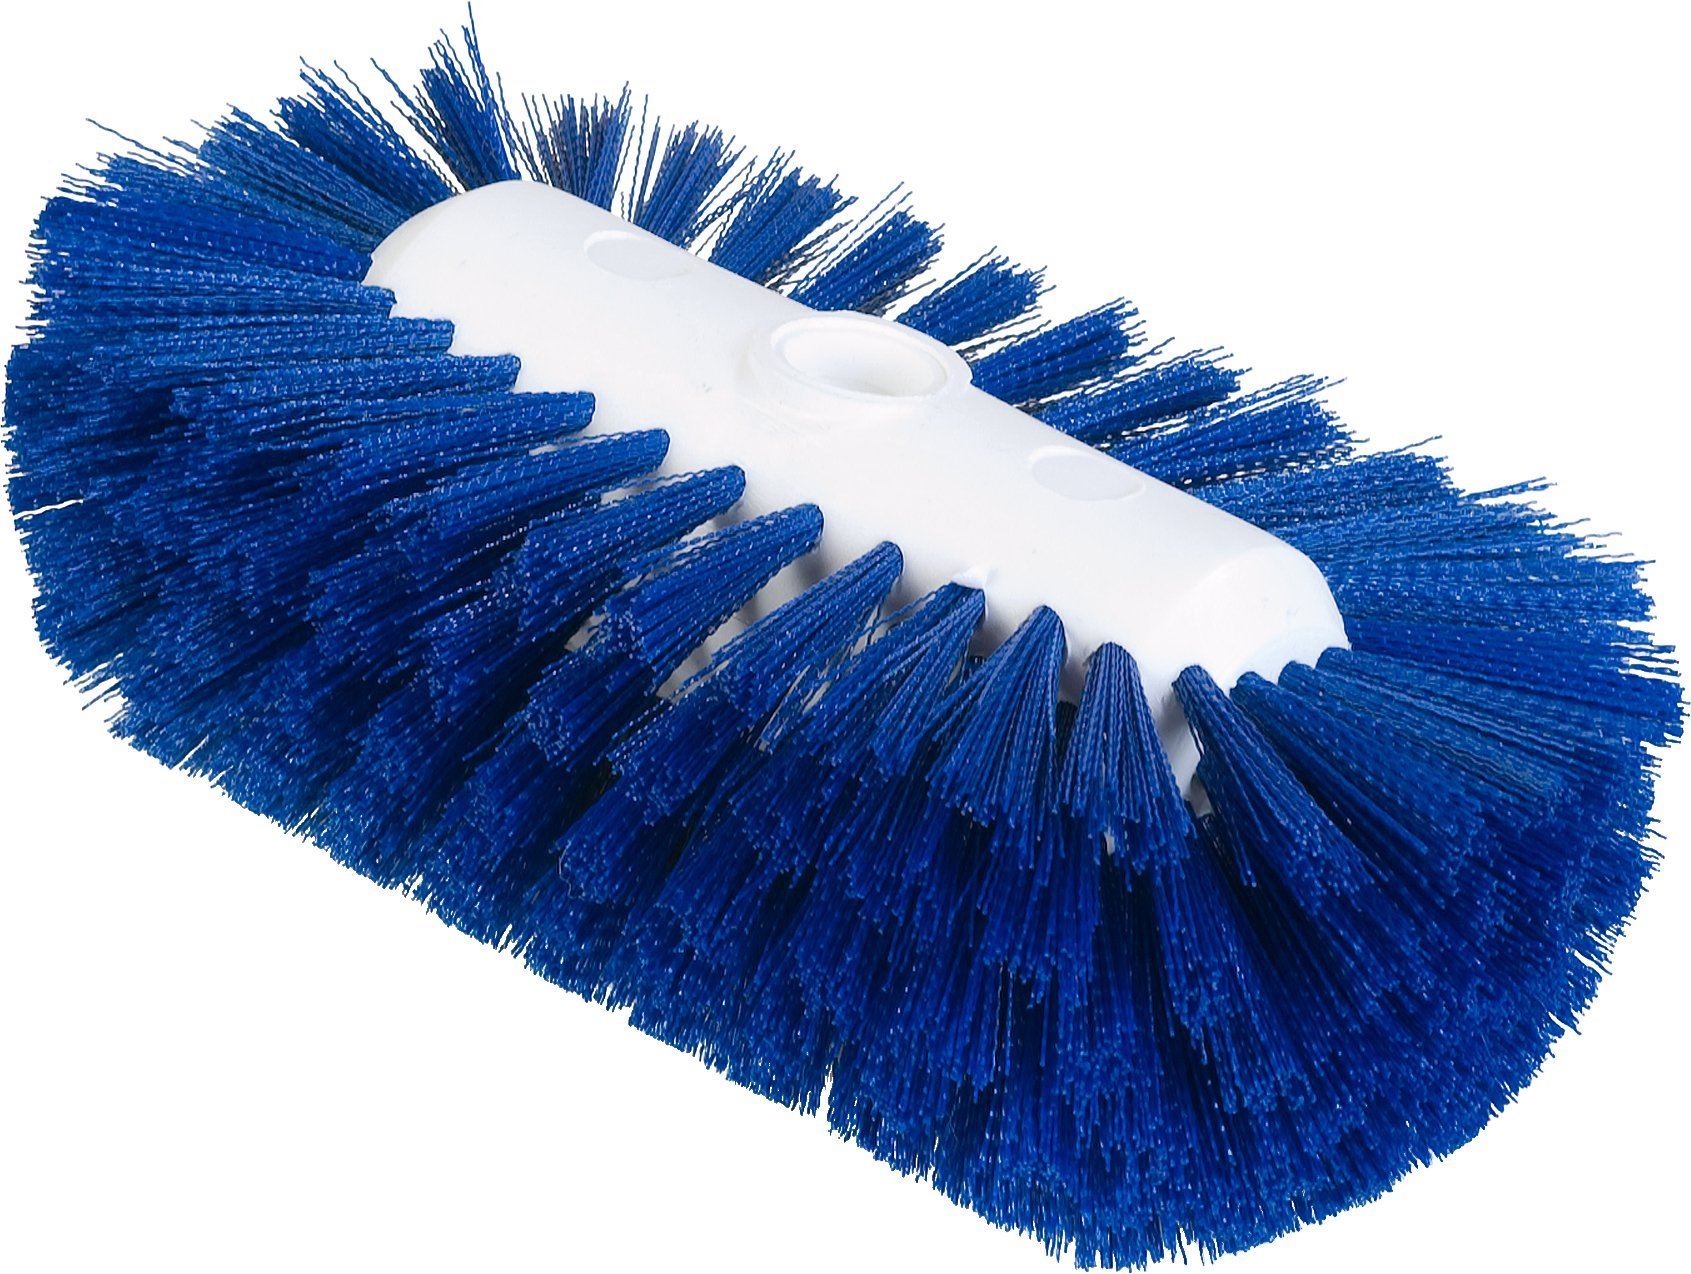 Carlisle 4004314 Sparta Spectrum Flare Head Tank and Kettle Brush, Blue Polyester Bristles, 9-1/2 x 5-1/2'' W (Case of 12)